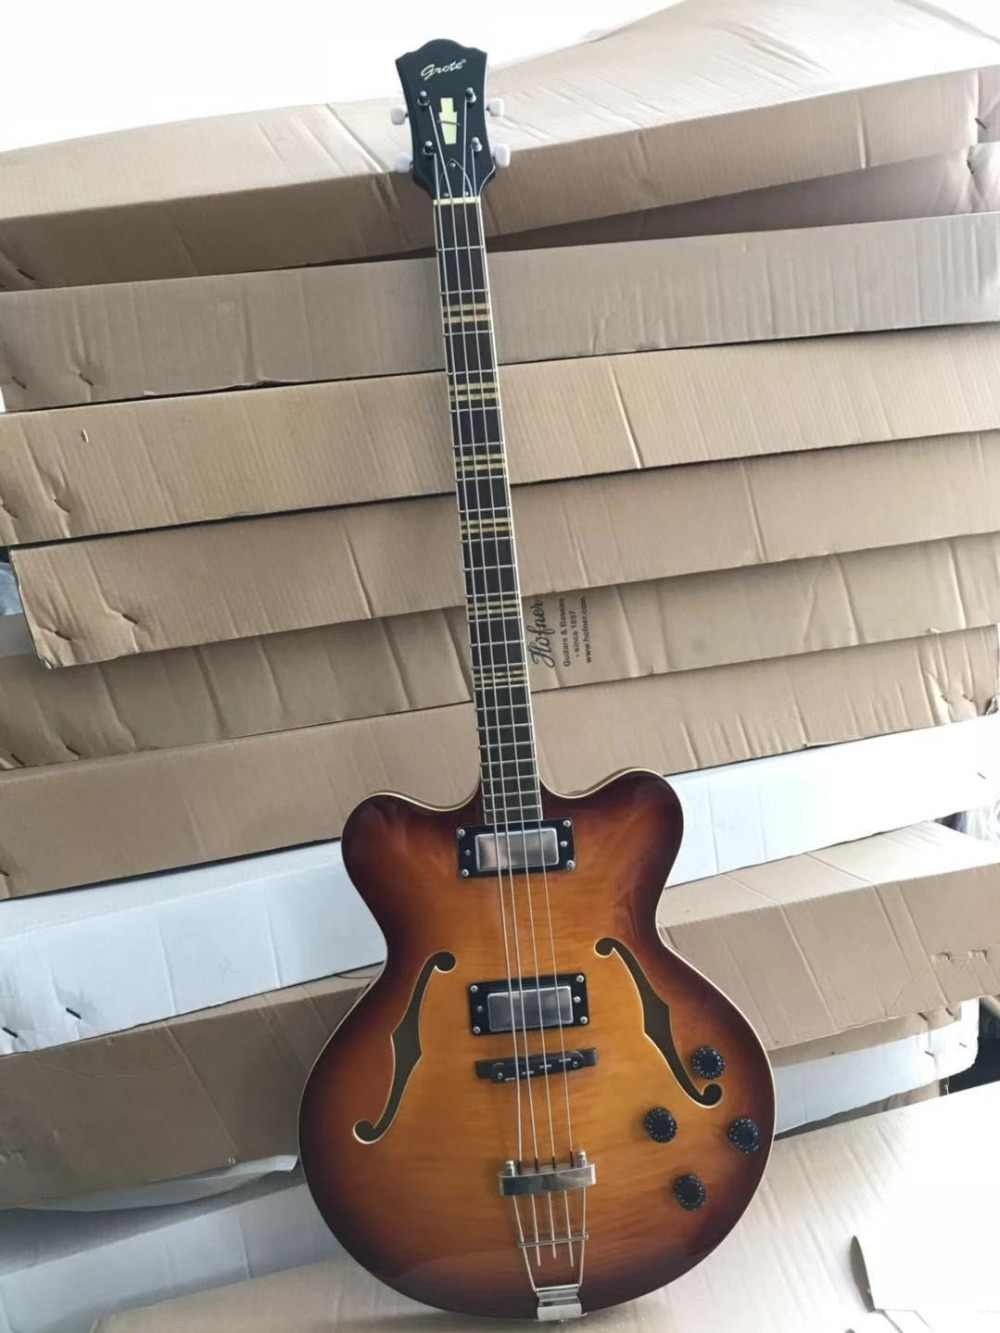 2019 hofner bass very thin grote htc 500 7 sb staple top [ 1000 x 1333 Pixel ]